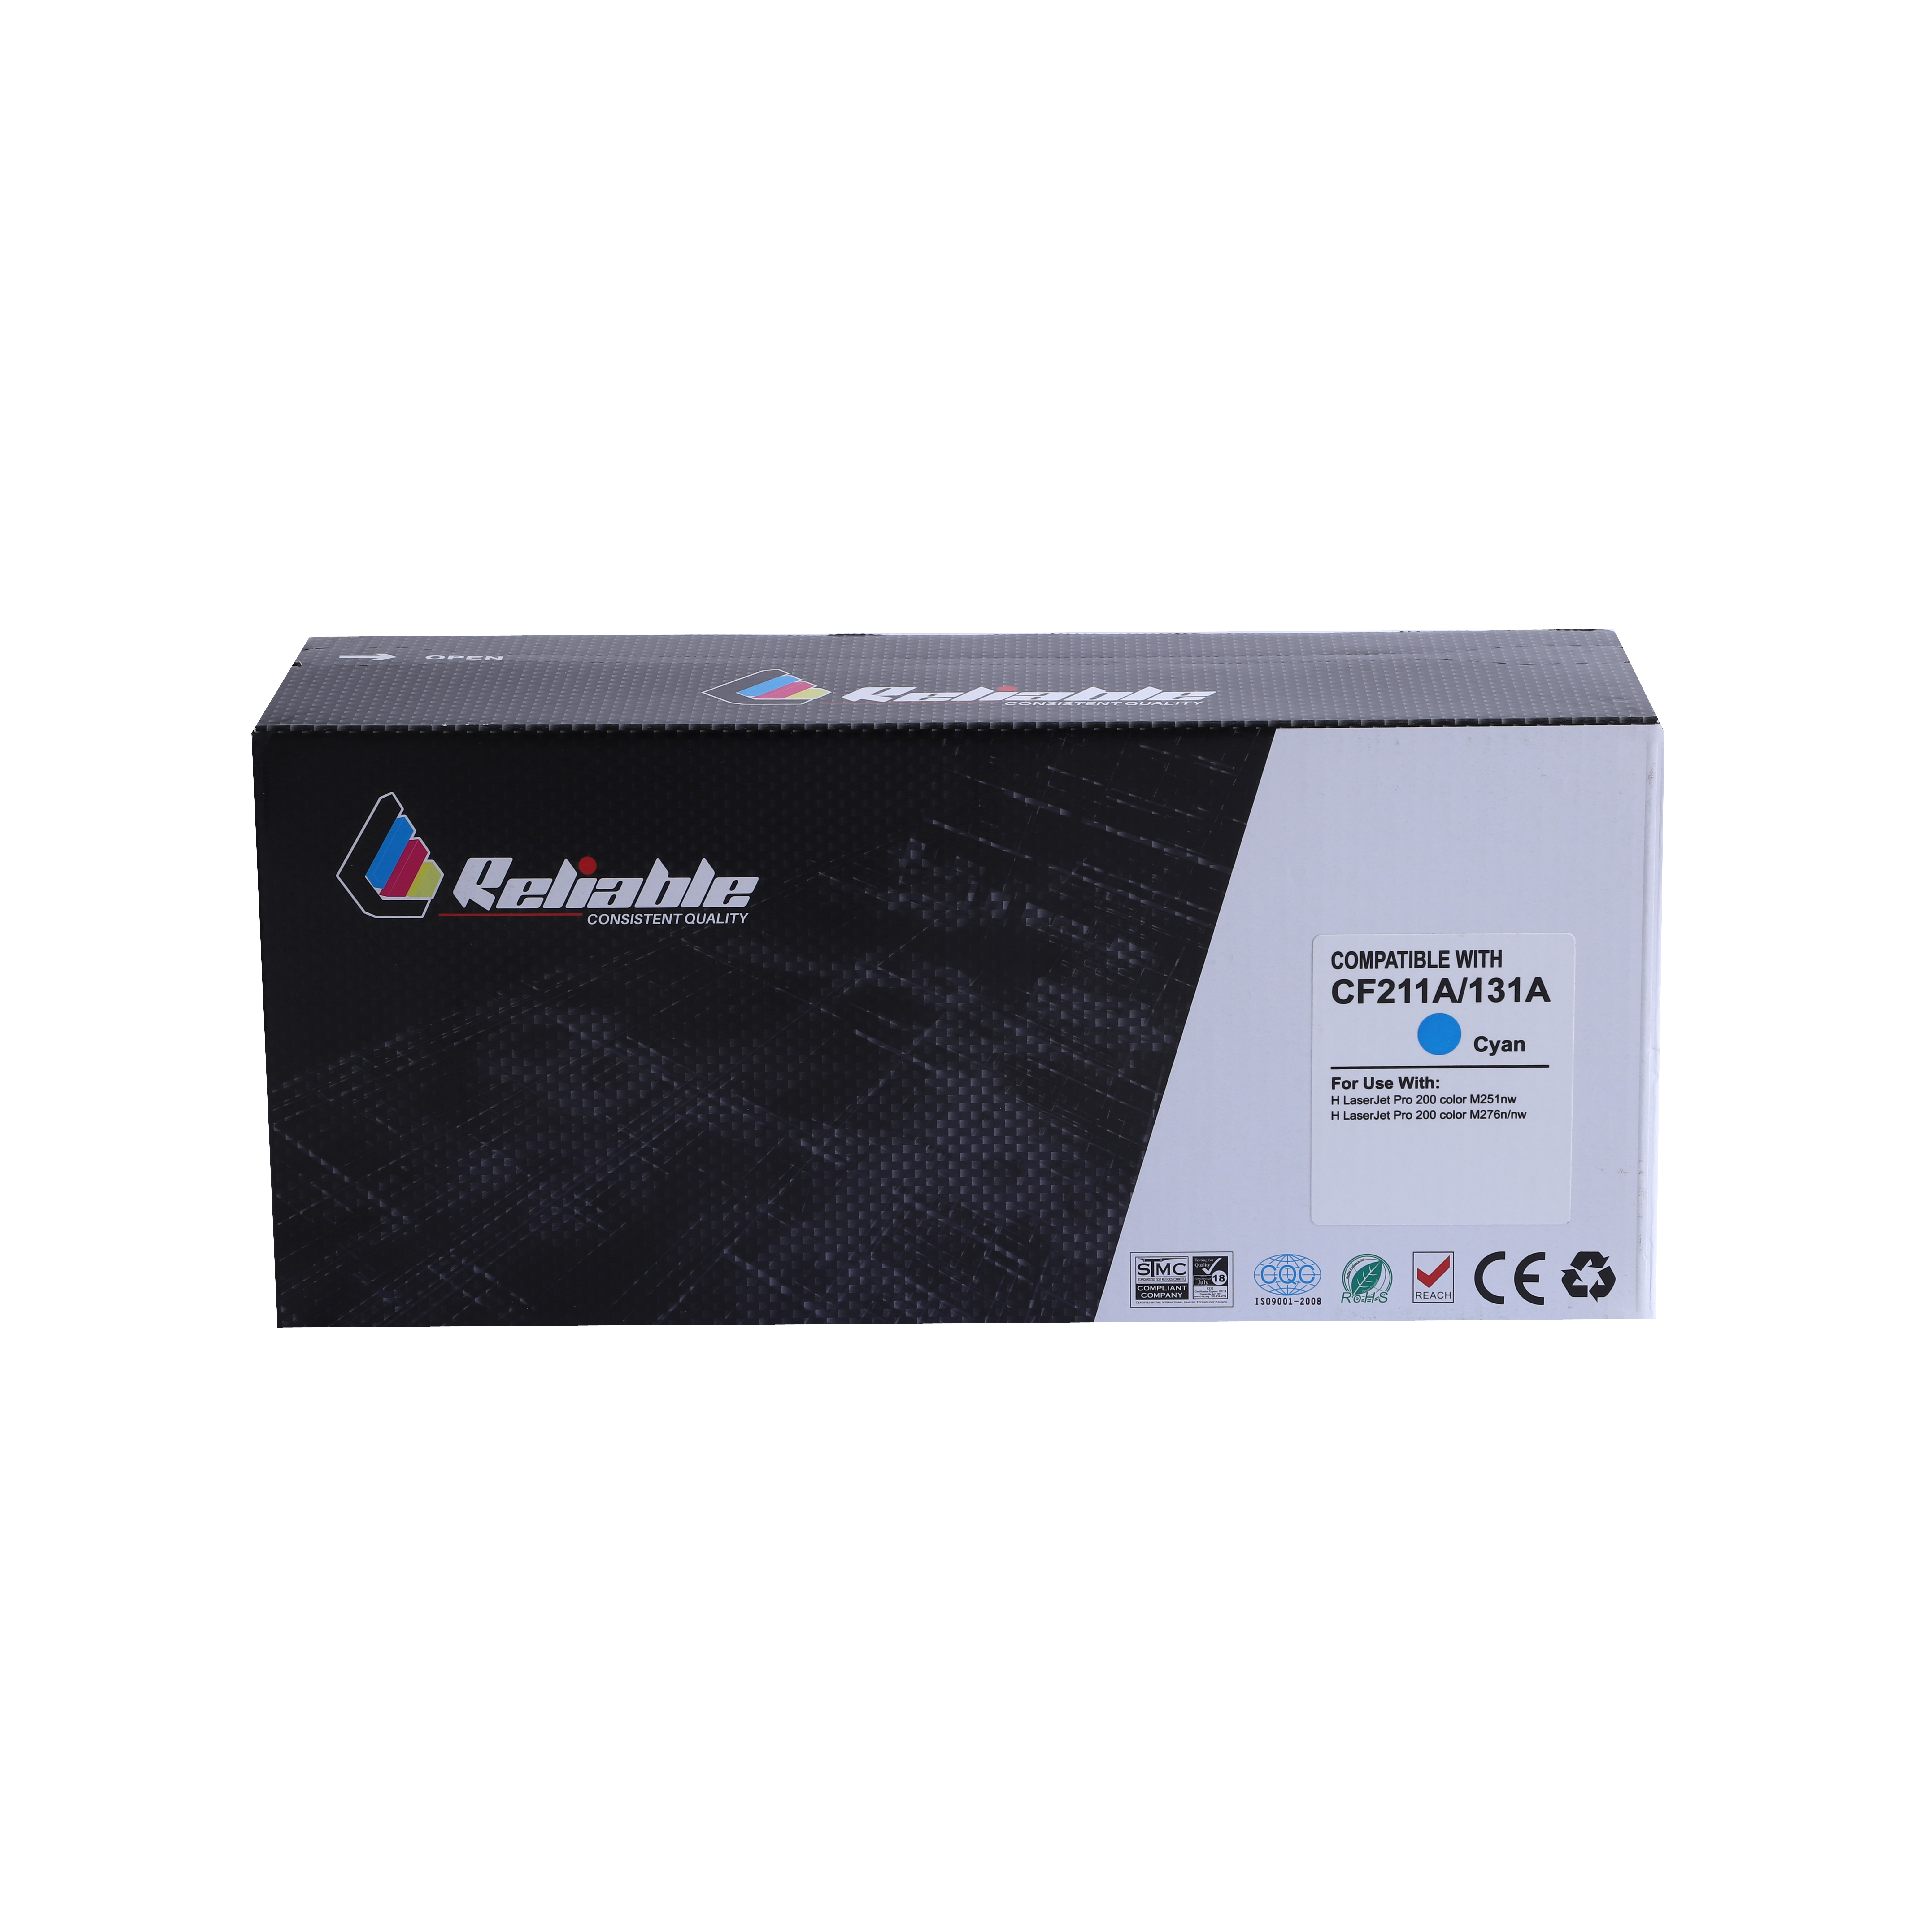 Reliable 125A (CB541A) / 131A (CF211A) / 128A (CE321A) Compatible Toner Cartridge - Cyan